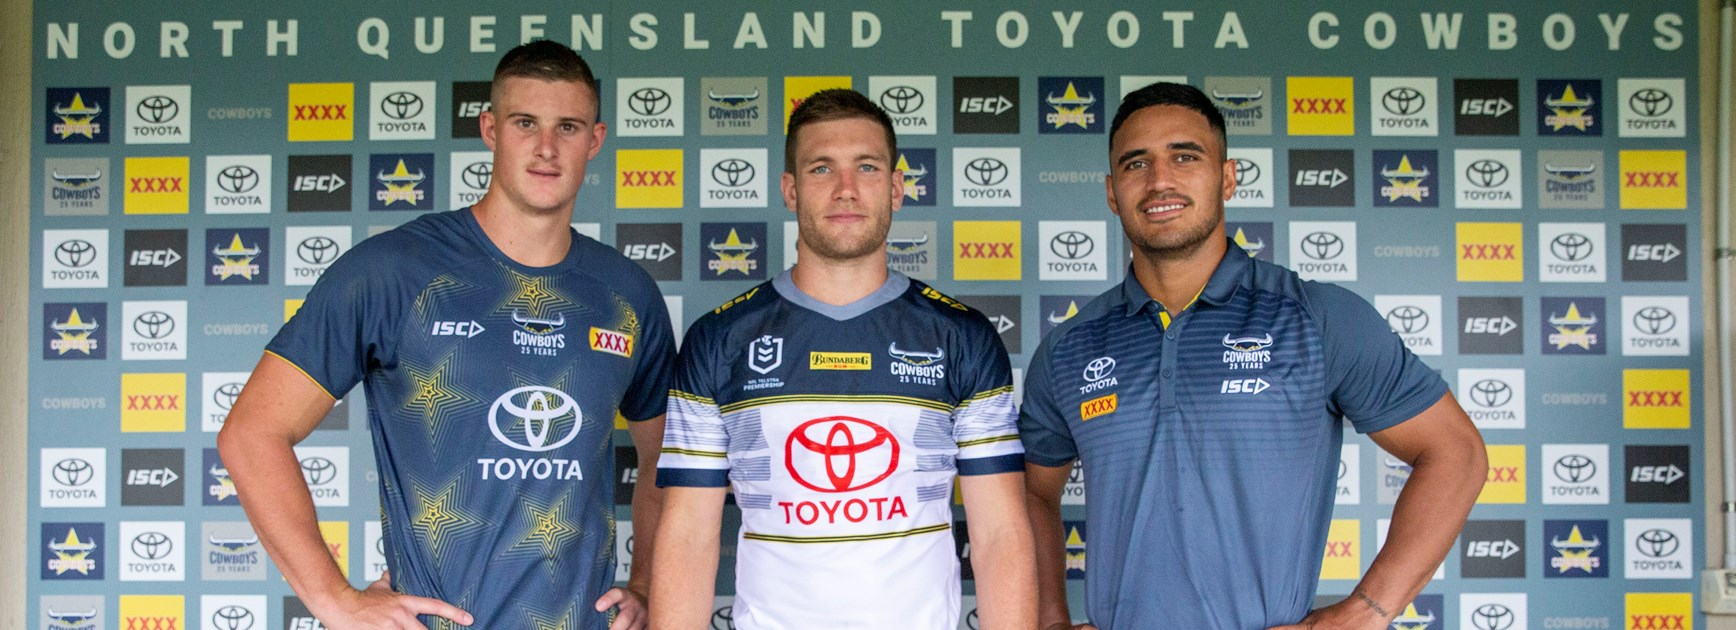 XXXX takes pride of place on Cowboys' playing shorts